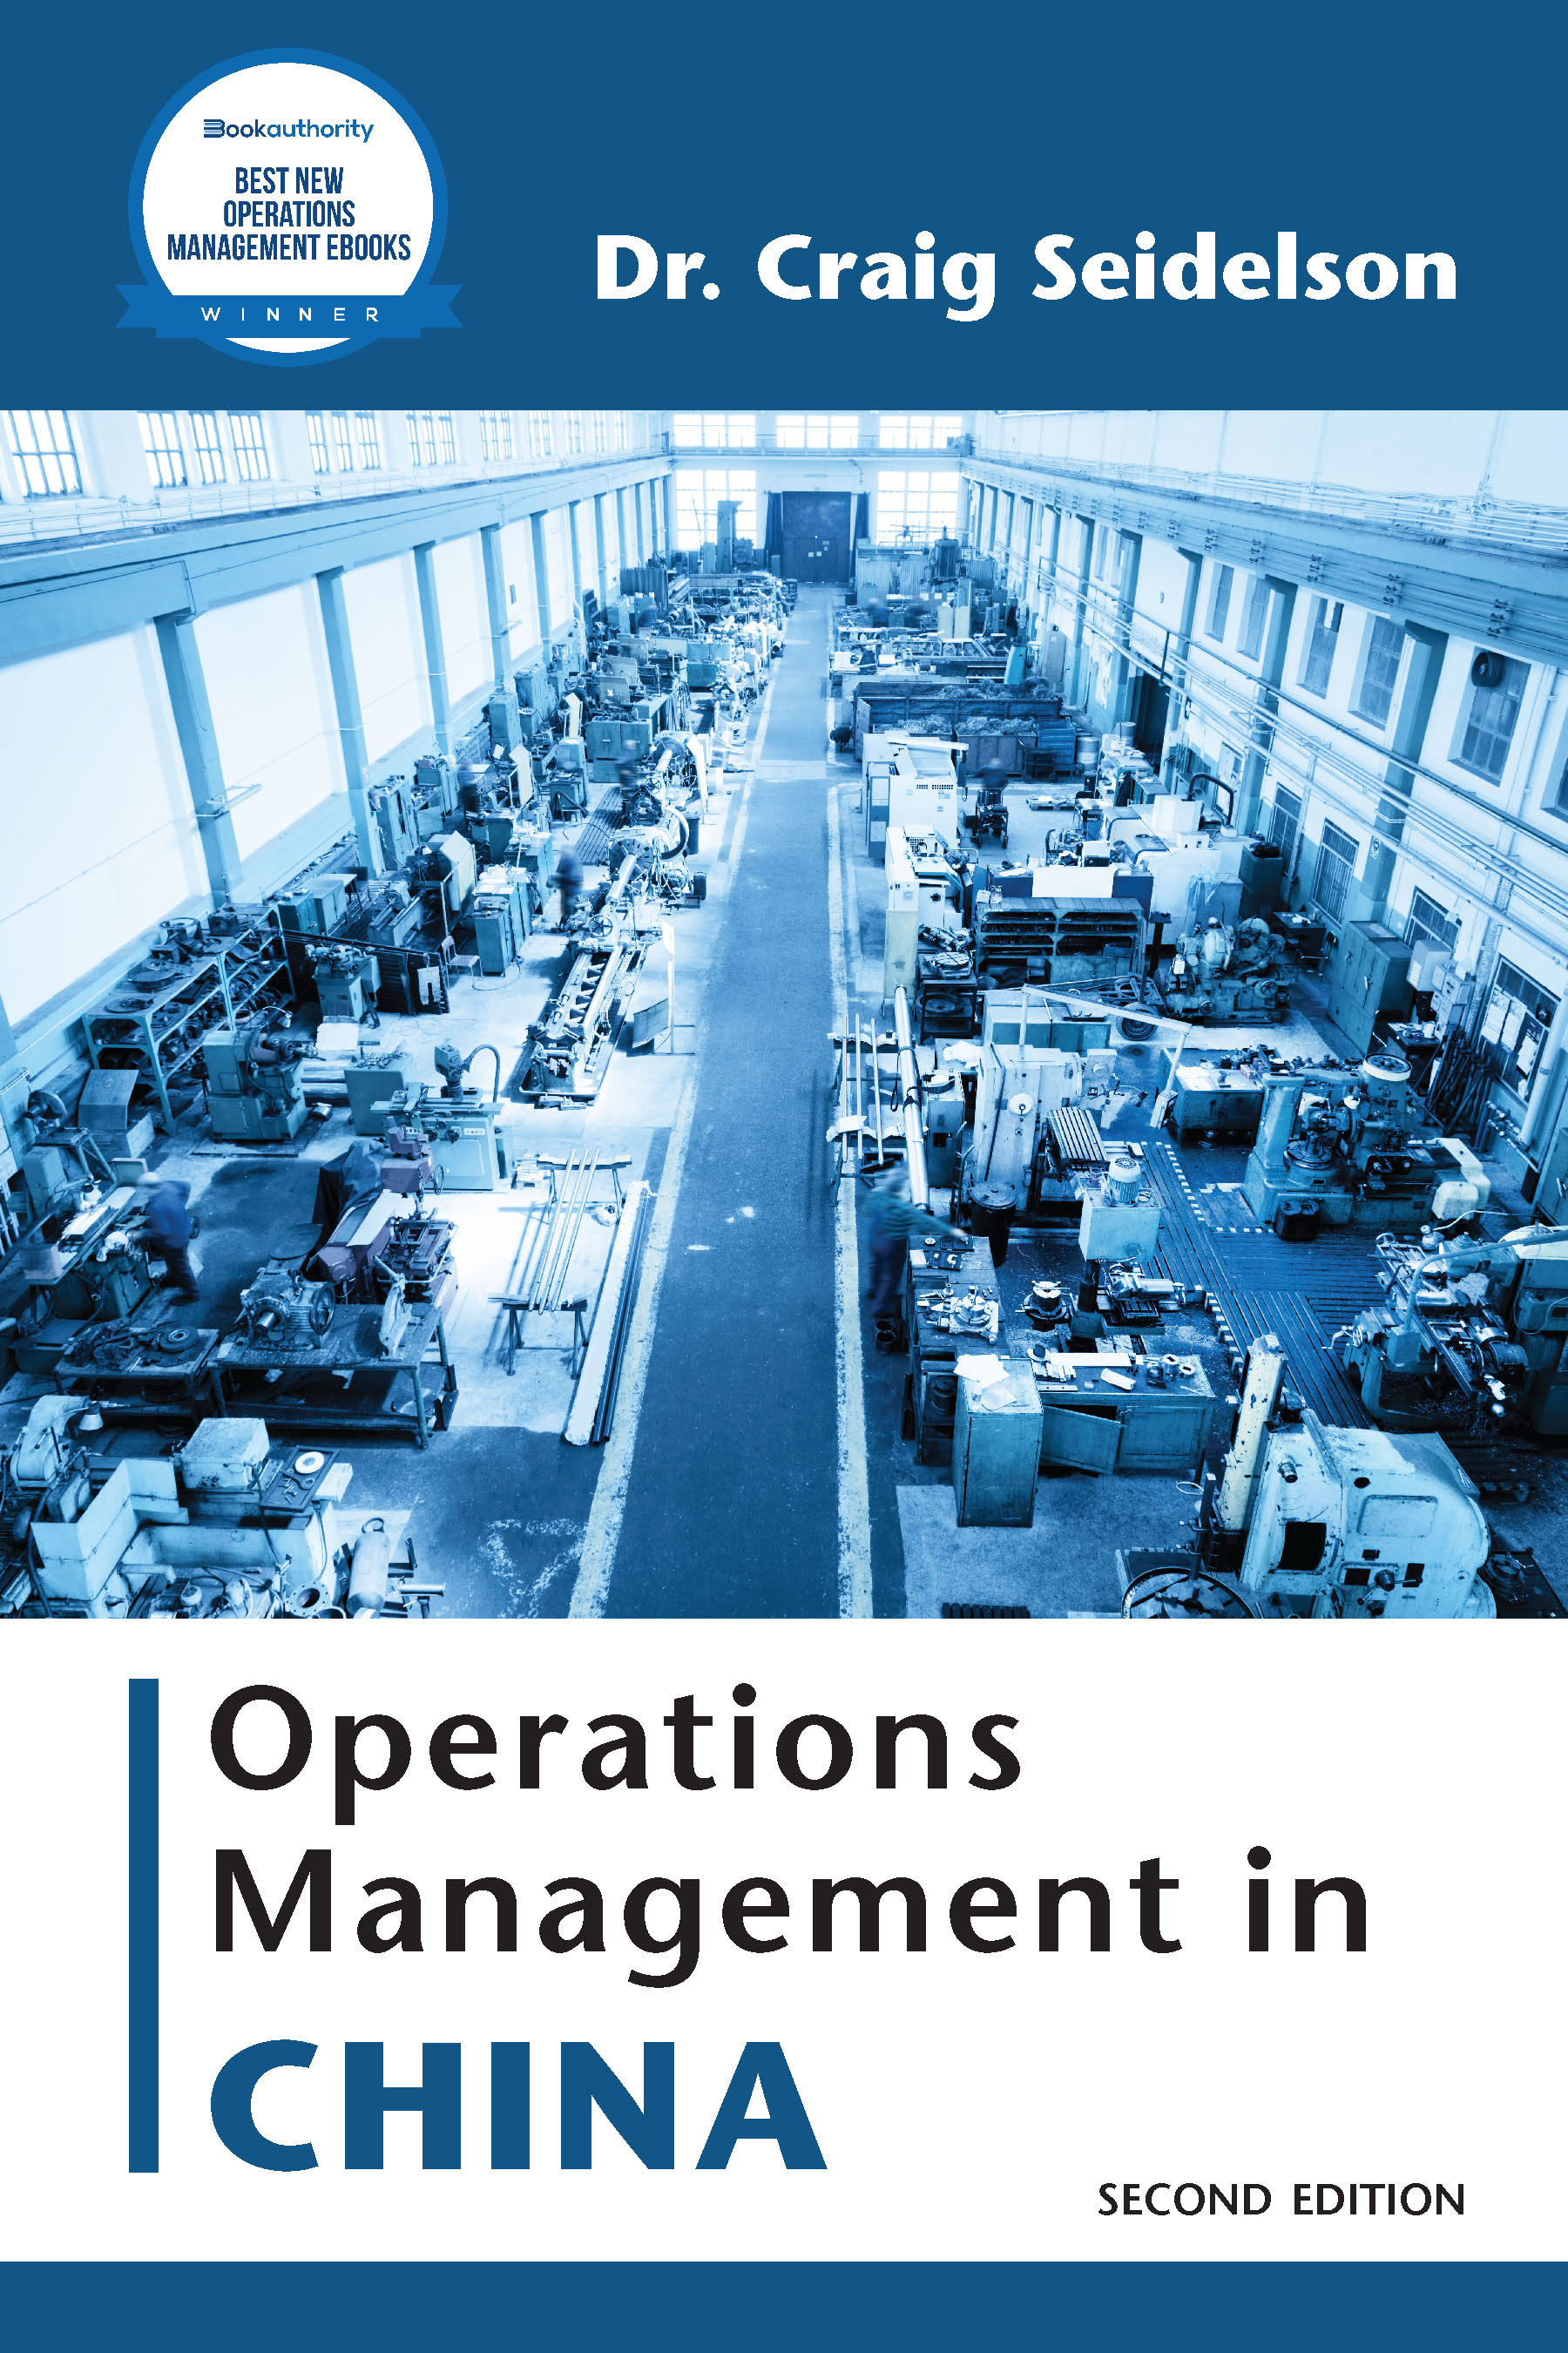 Operations Management in China, Second Edition